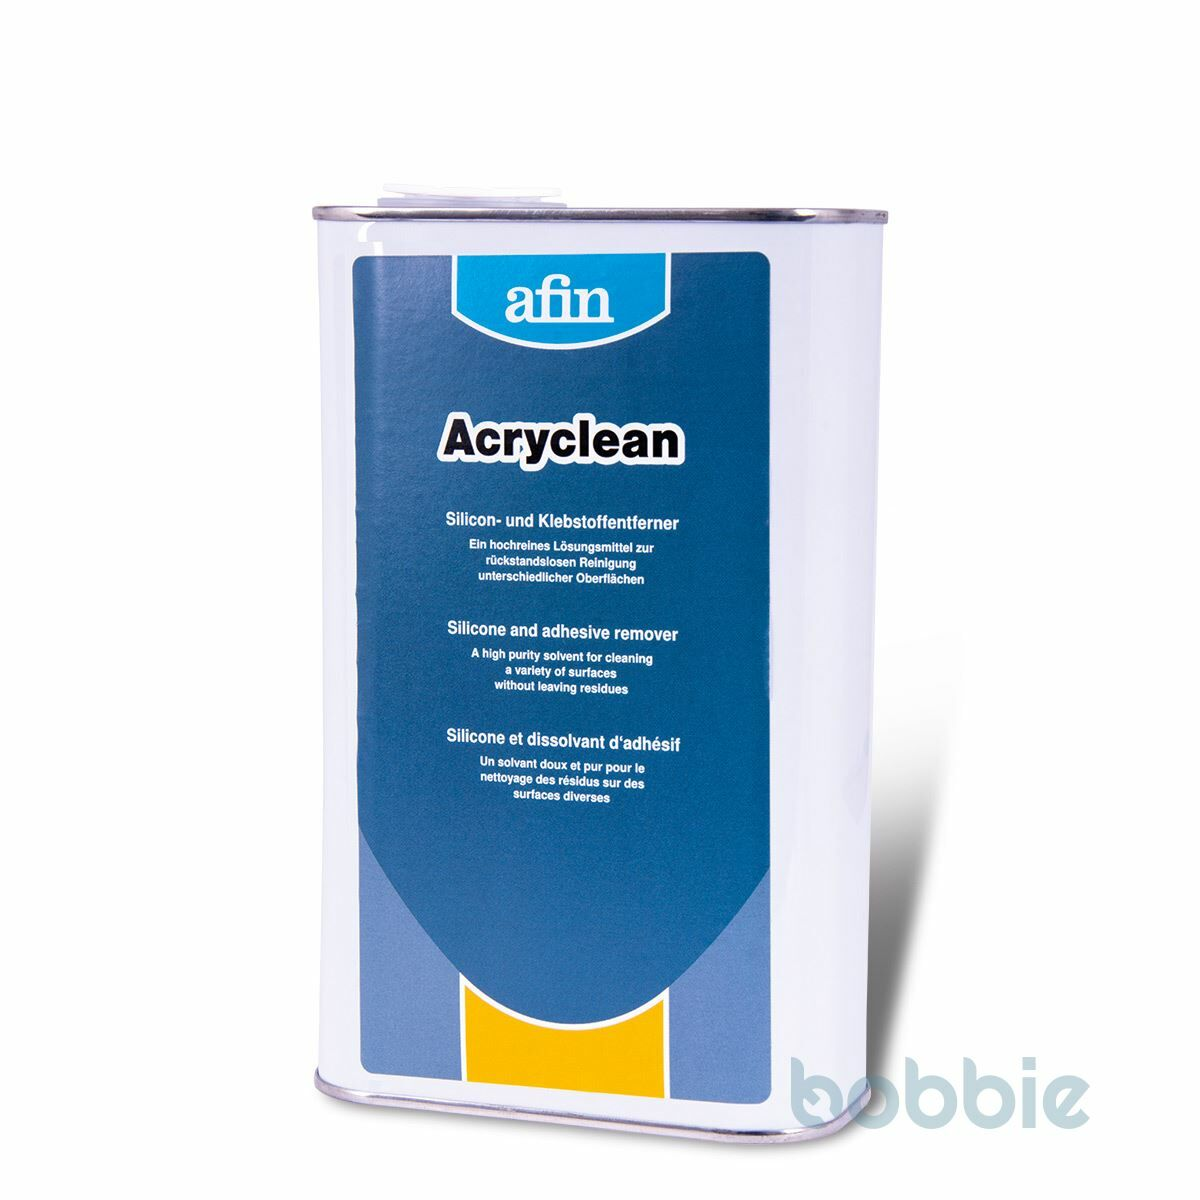 afin Acryclean - Siliconentferner 1 l